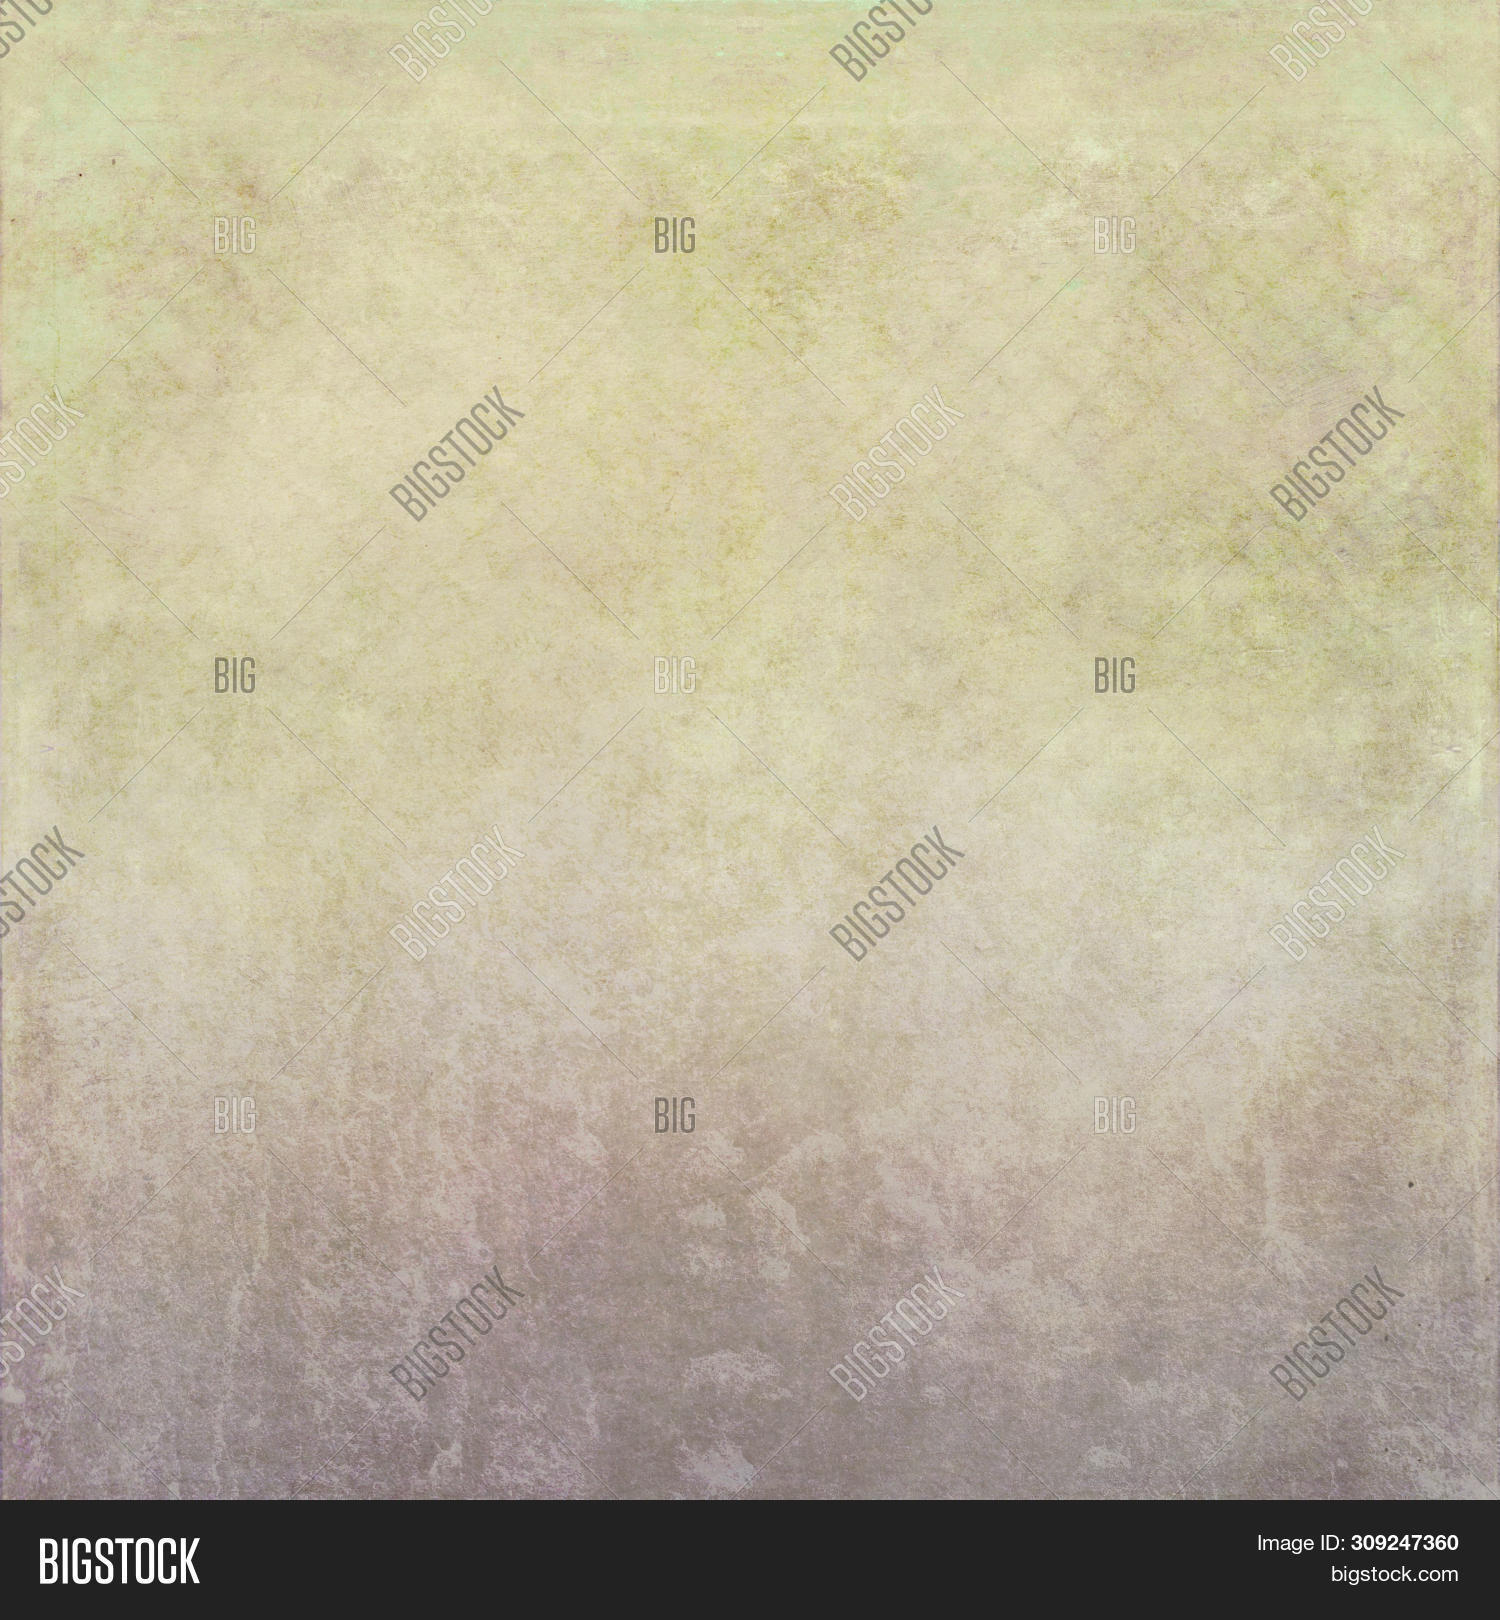 abstract,abstraction,art,artistic,artwork,arty,backdrop,background,design,design element,detail,detailed,earthy,gradient,gradient background,grime,grunge,grungy,illustration,intricate,layered,layers,natural background,natural texture,organic,organic texture,organic texture background,original,paint,painterly,paper surface,papyrus,pastel,pastel colors,rectangle,rough surface,rough texture,square,surface,textured,useful,vintage,wall,wall surface,wallpaper